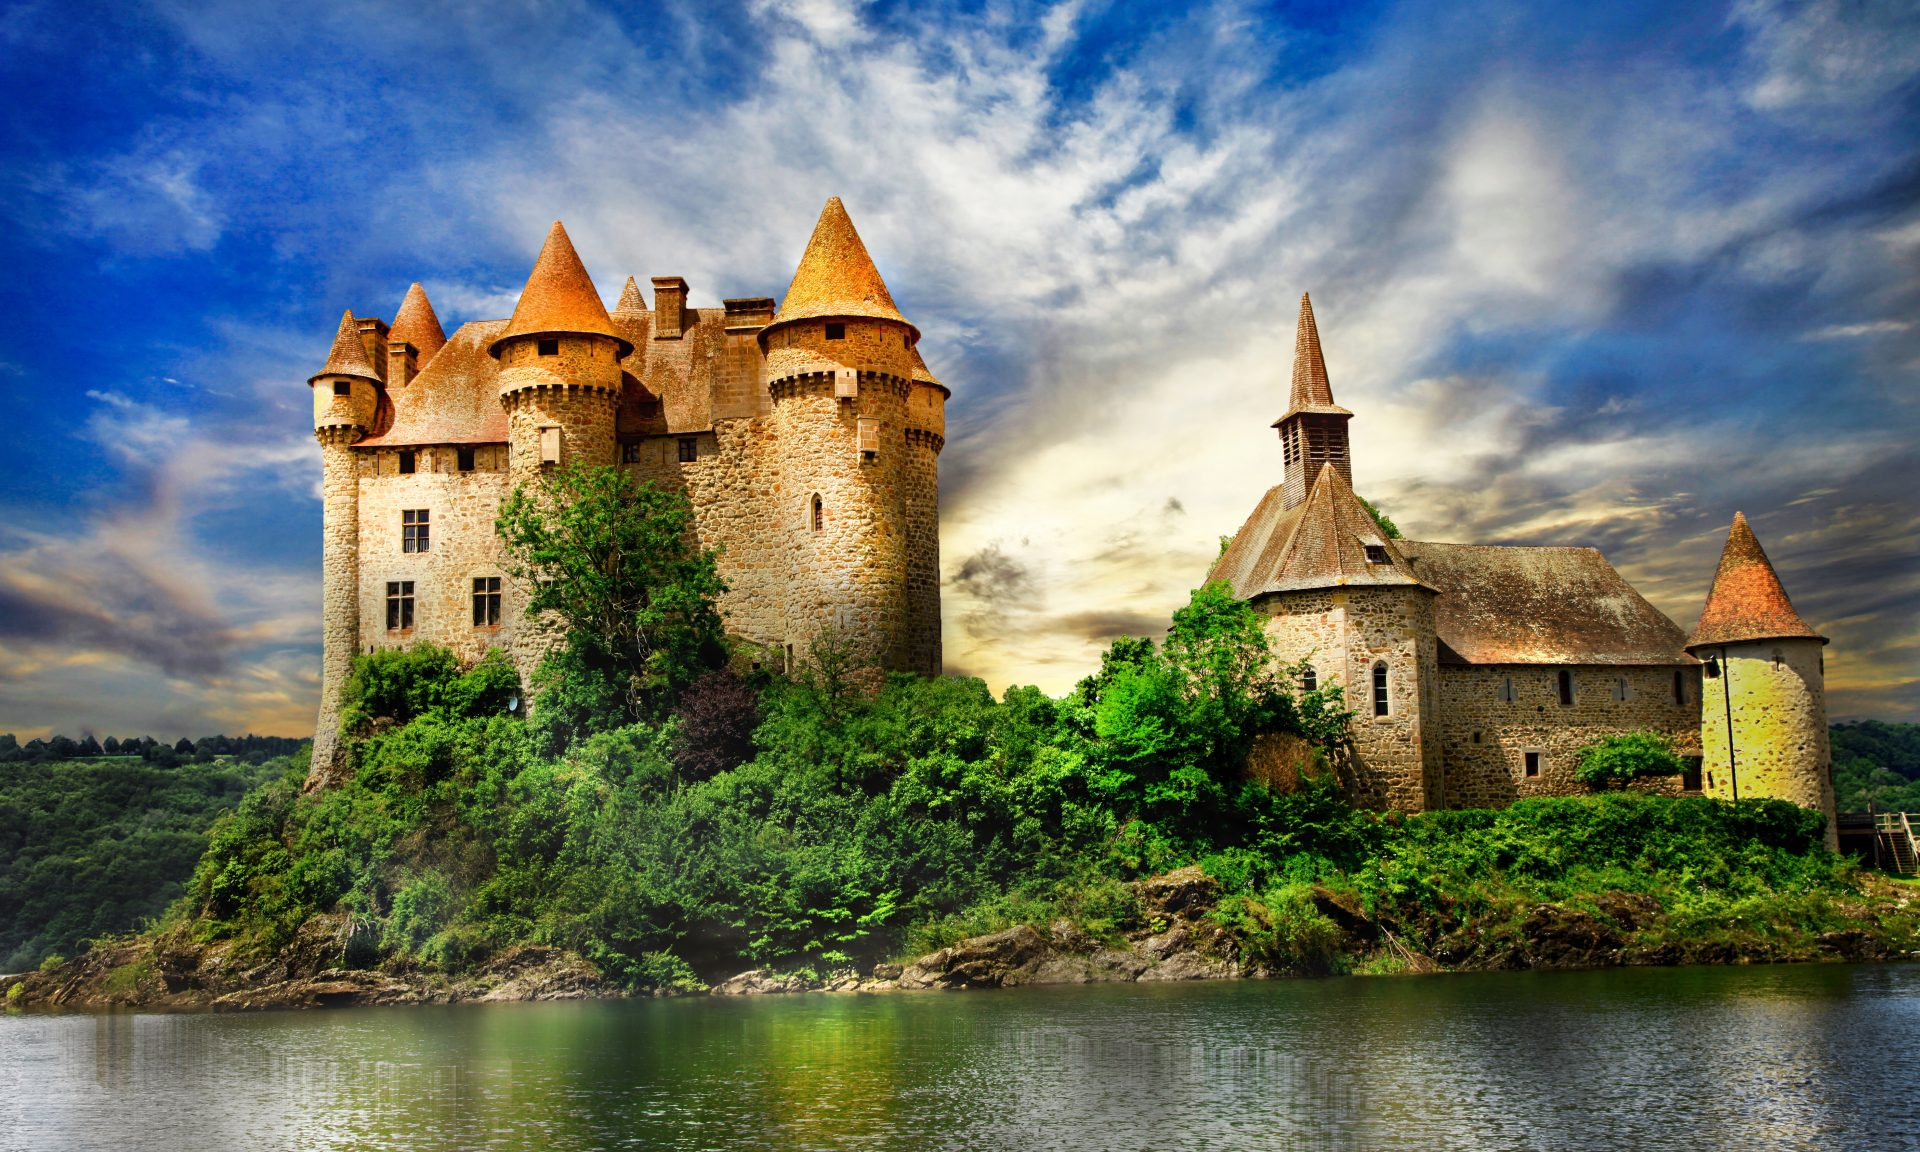 The Château de Val is a stunning 15th century 'fairy tale' castle located in Auvergne